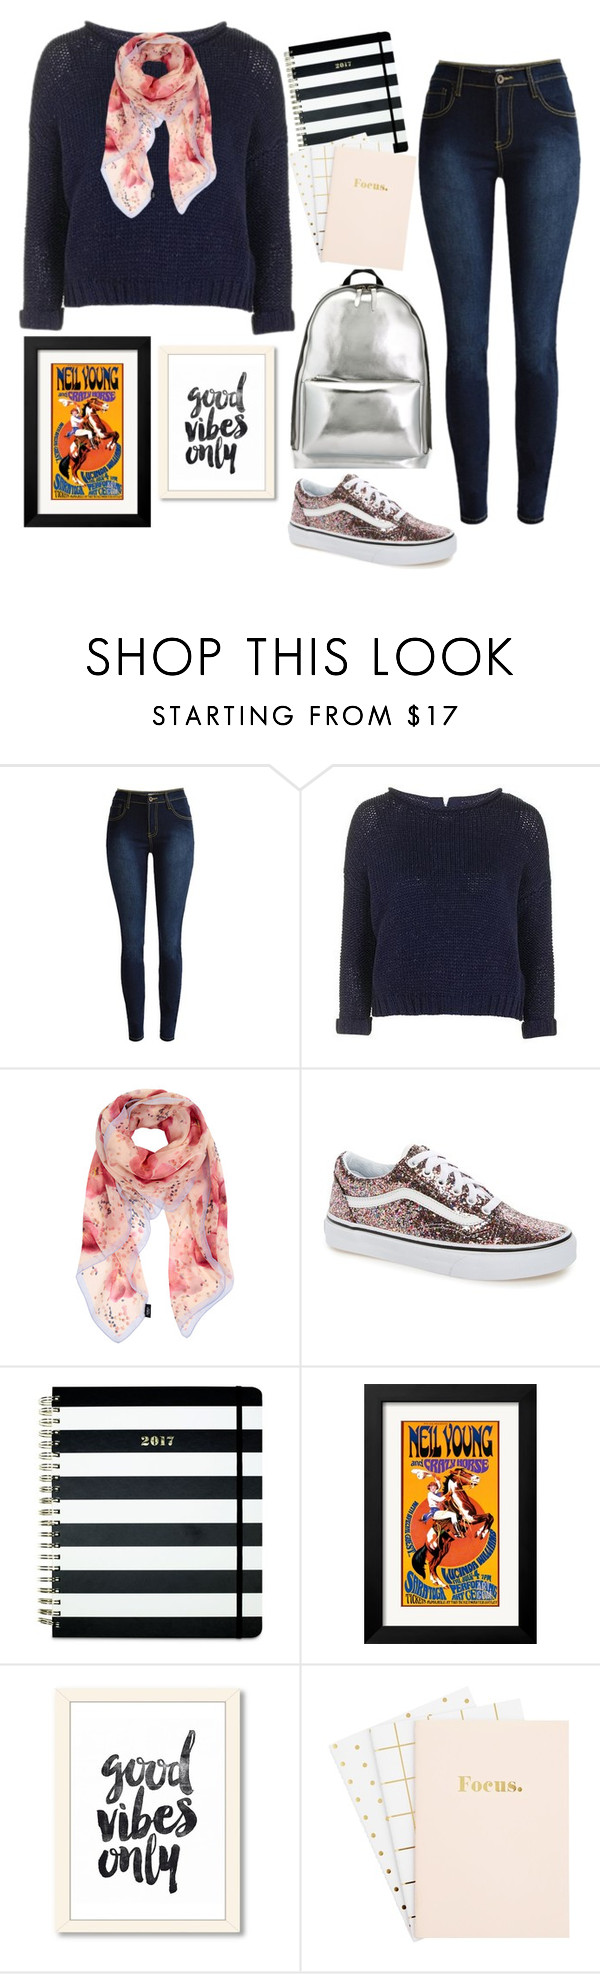 """""""Untitled #281"""" by organichild ❤ liked on Polyvore featuring Topshop, Furla, Vans, Kate Spade and 3.1 Phillip Lim"""